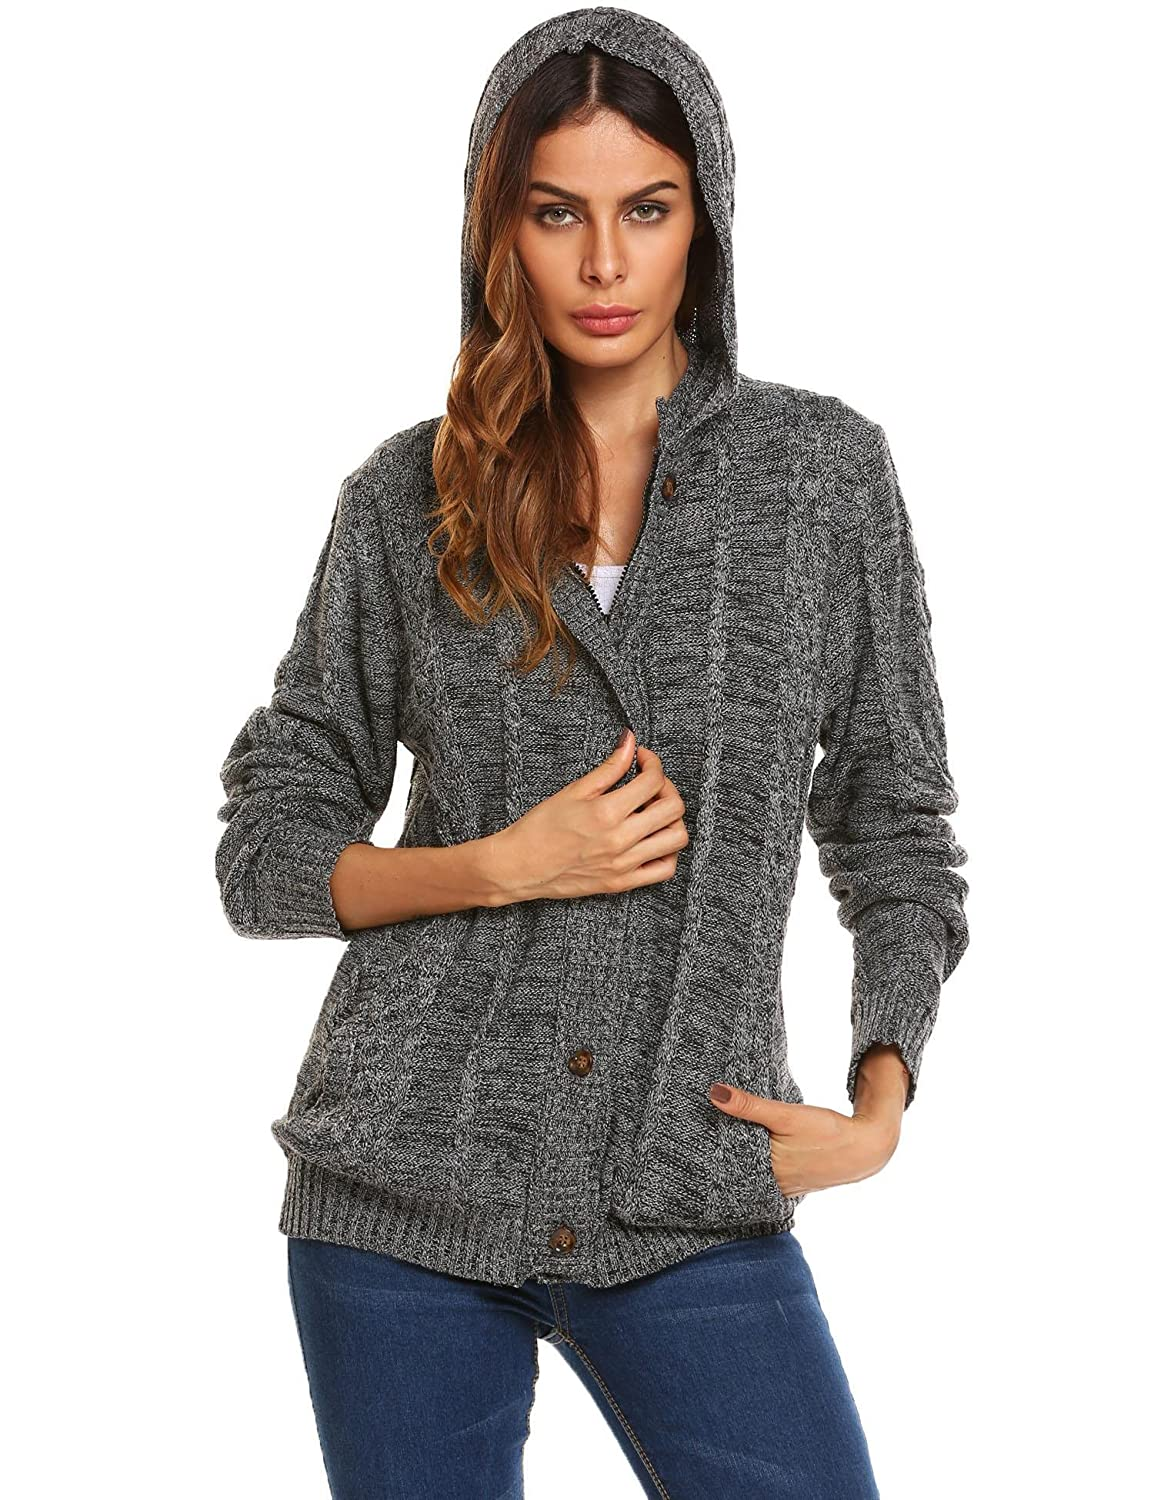 Lovaru Women's Hooded Cable Knit Button Down Cardigan Fleece ...